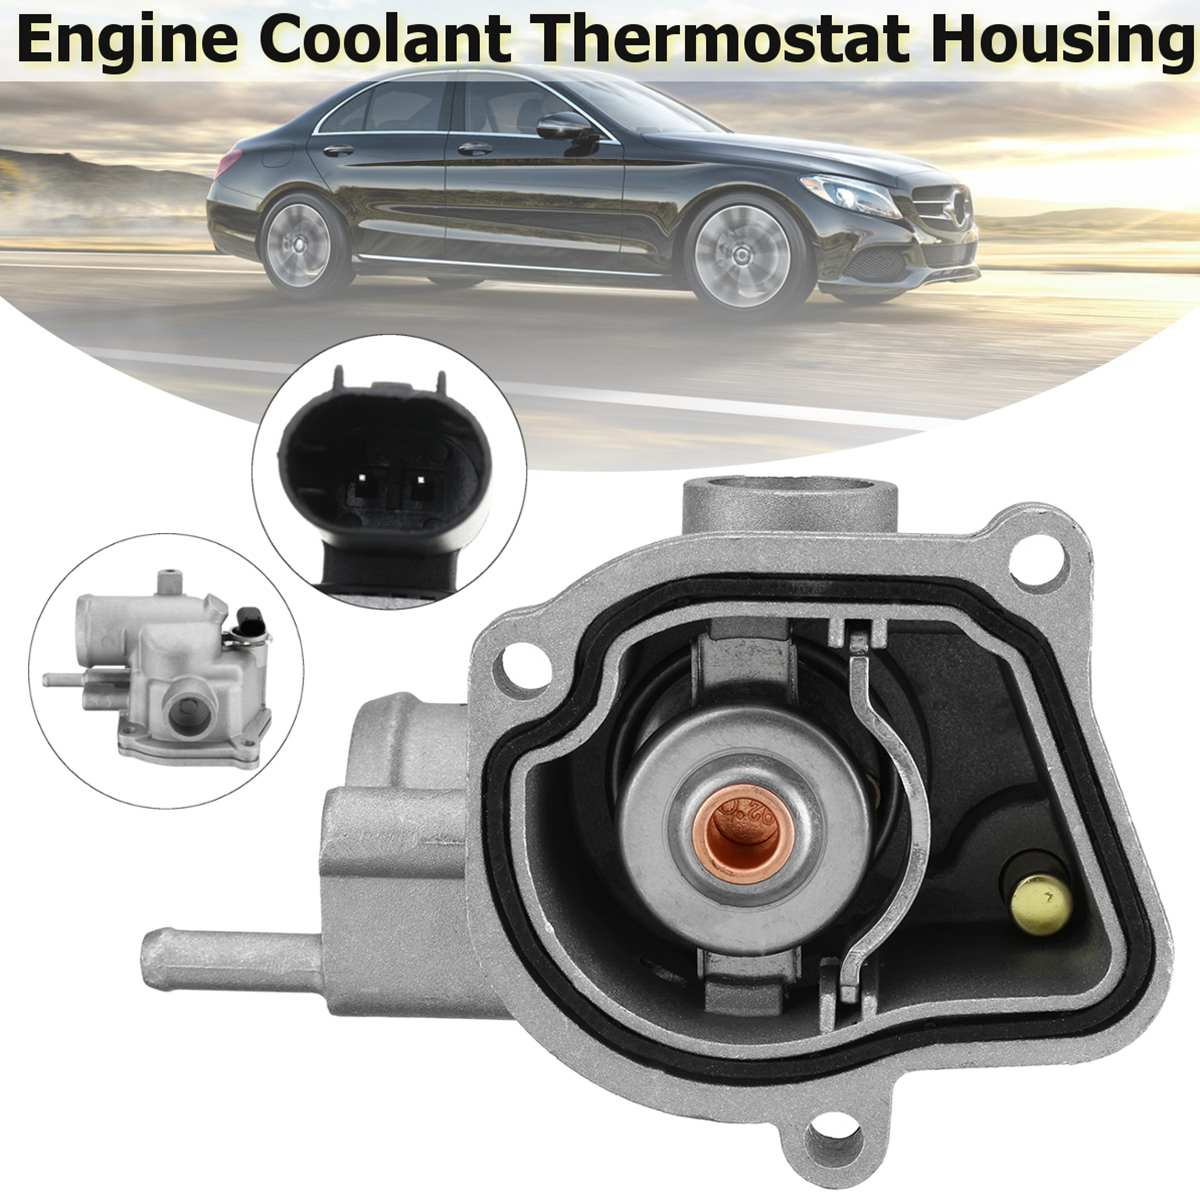 3.1 TD 4.0 4.7 V8 THERMOSTAT WITH HOUSING FOR JEEP GRAND CHEROKEE MK2 2.7 CRD